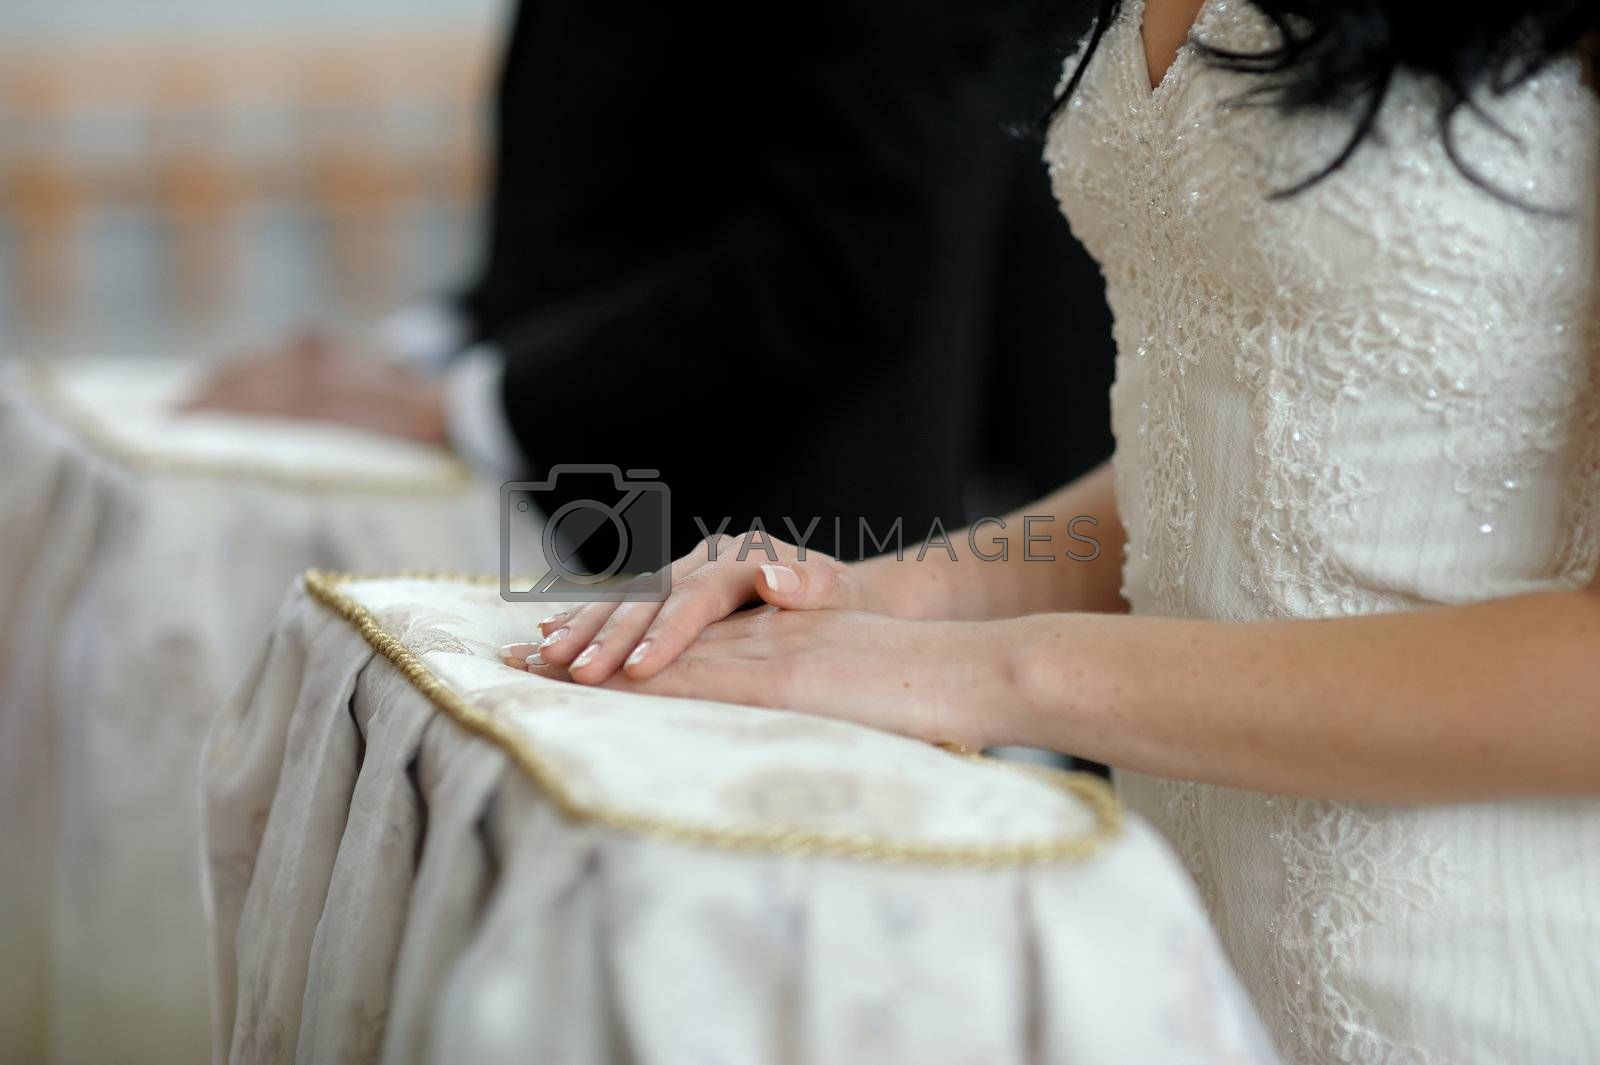 Bride's hands on the pillow close-up during wedding church ceremony